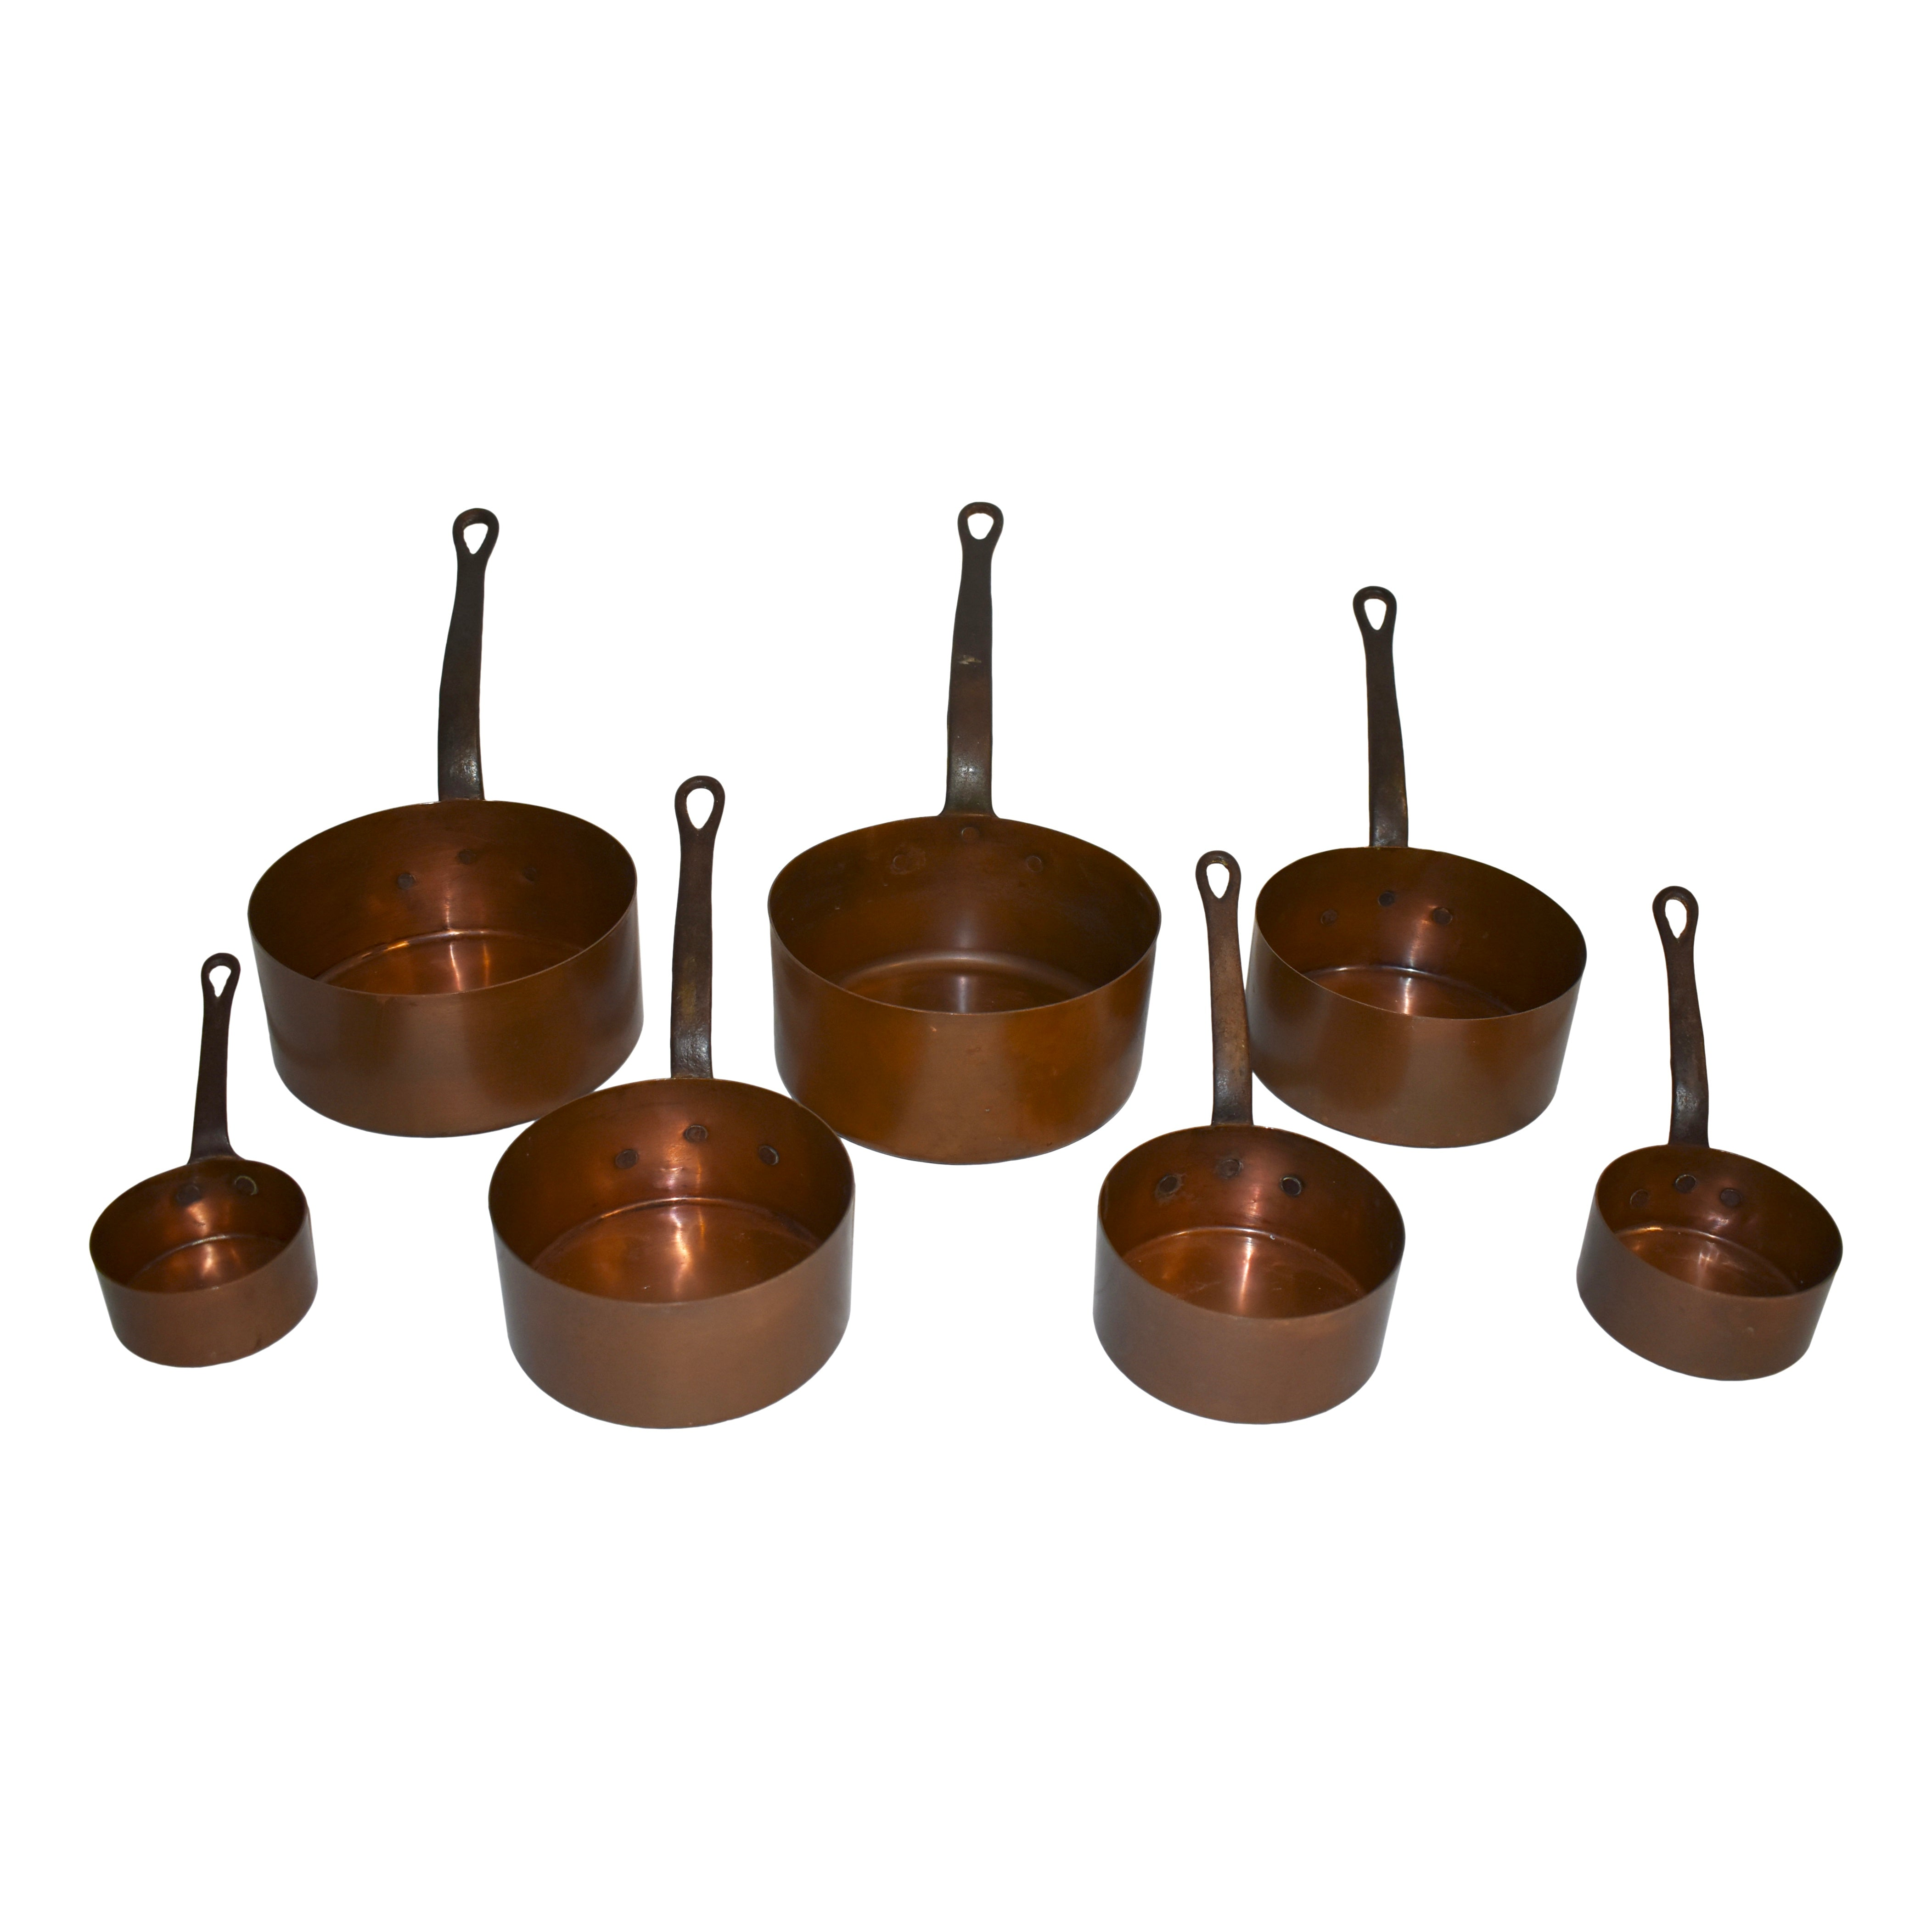 Copper Saucepans with Iron Handles, Set of Seven